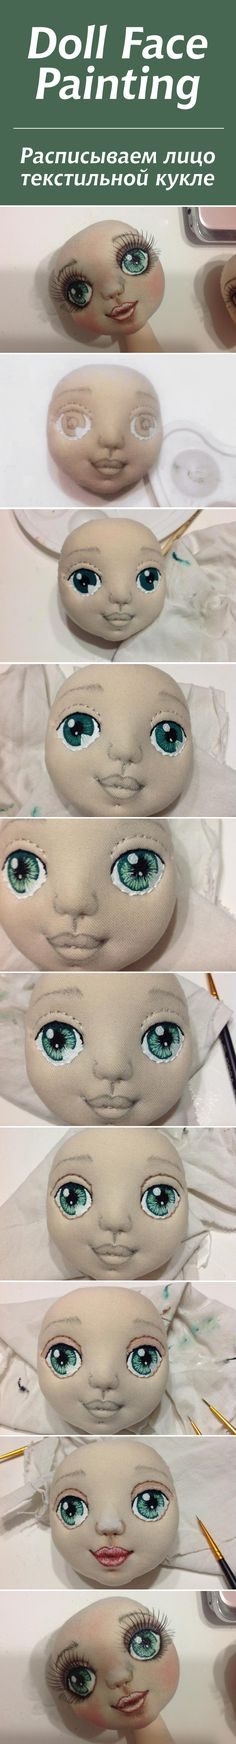 doll face painting